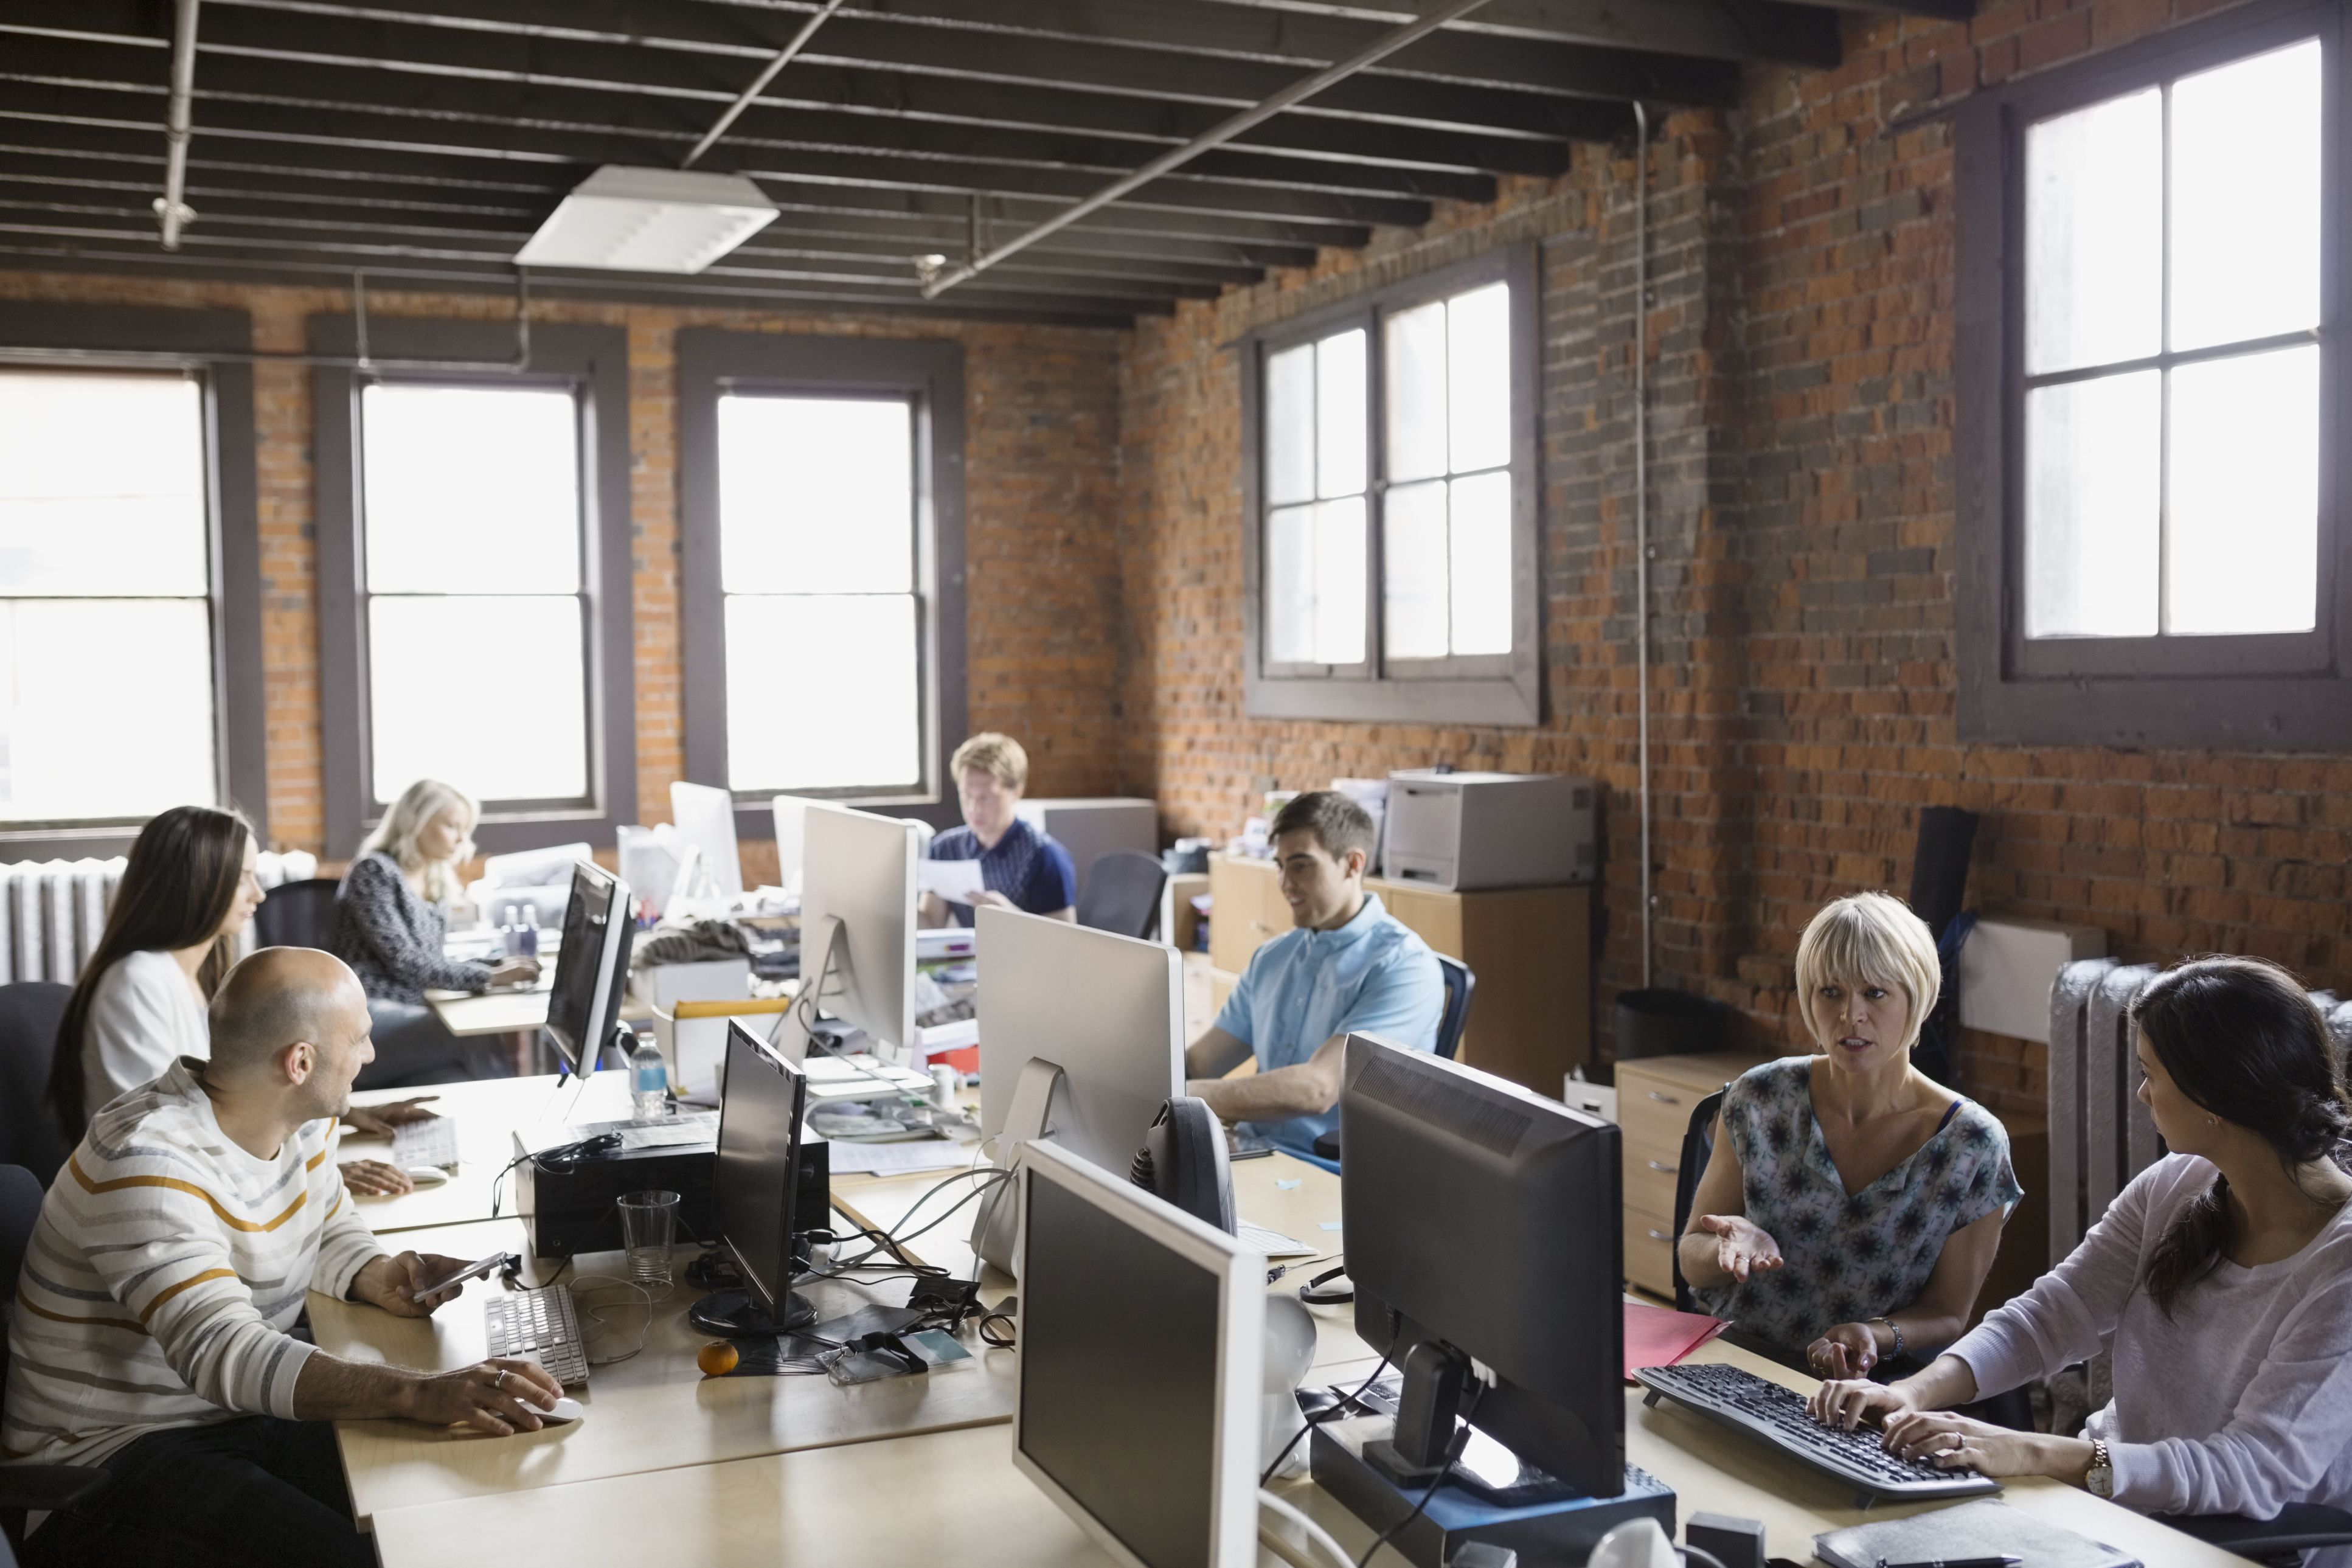 Business people working at computer workstations in office